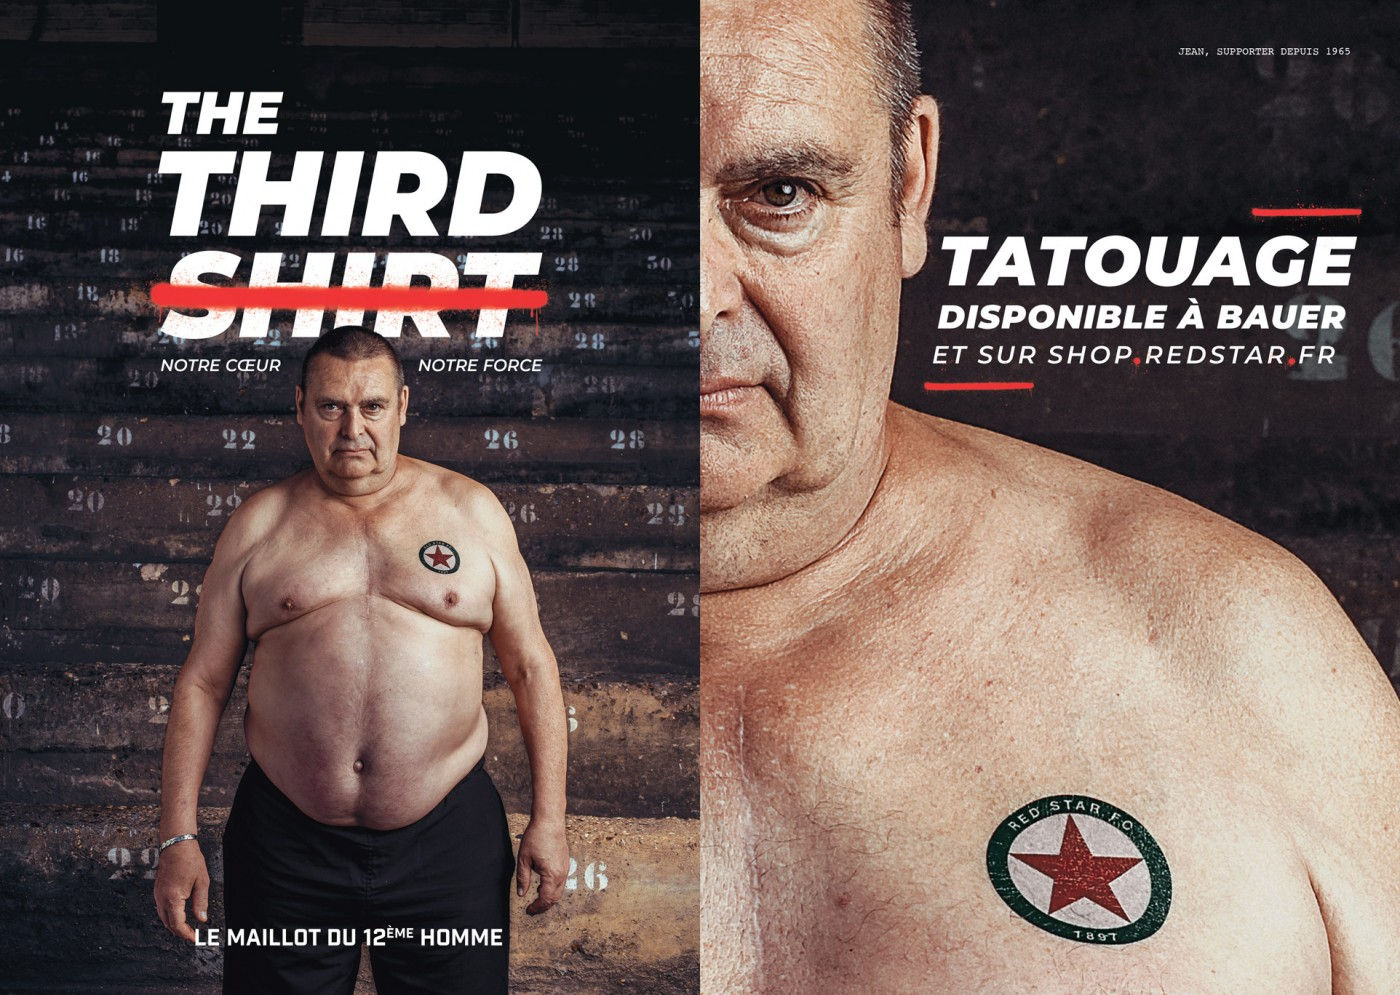 https://www.footpack.fr/wp-content/uploads/2019/10/maillot-third-red-star-tatouage.jpg